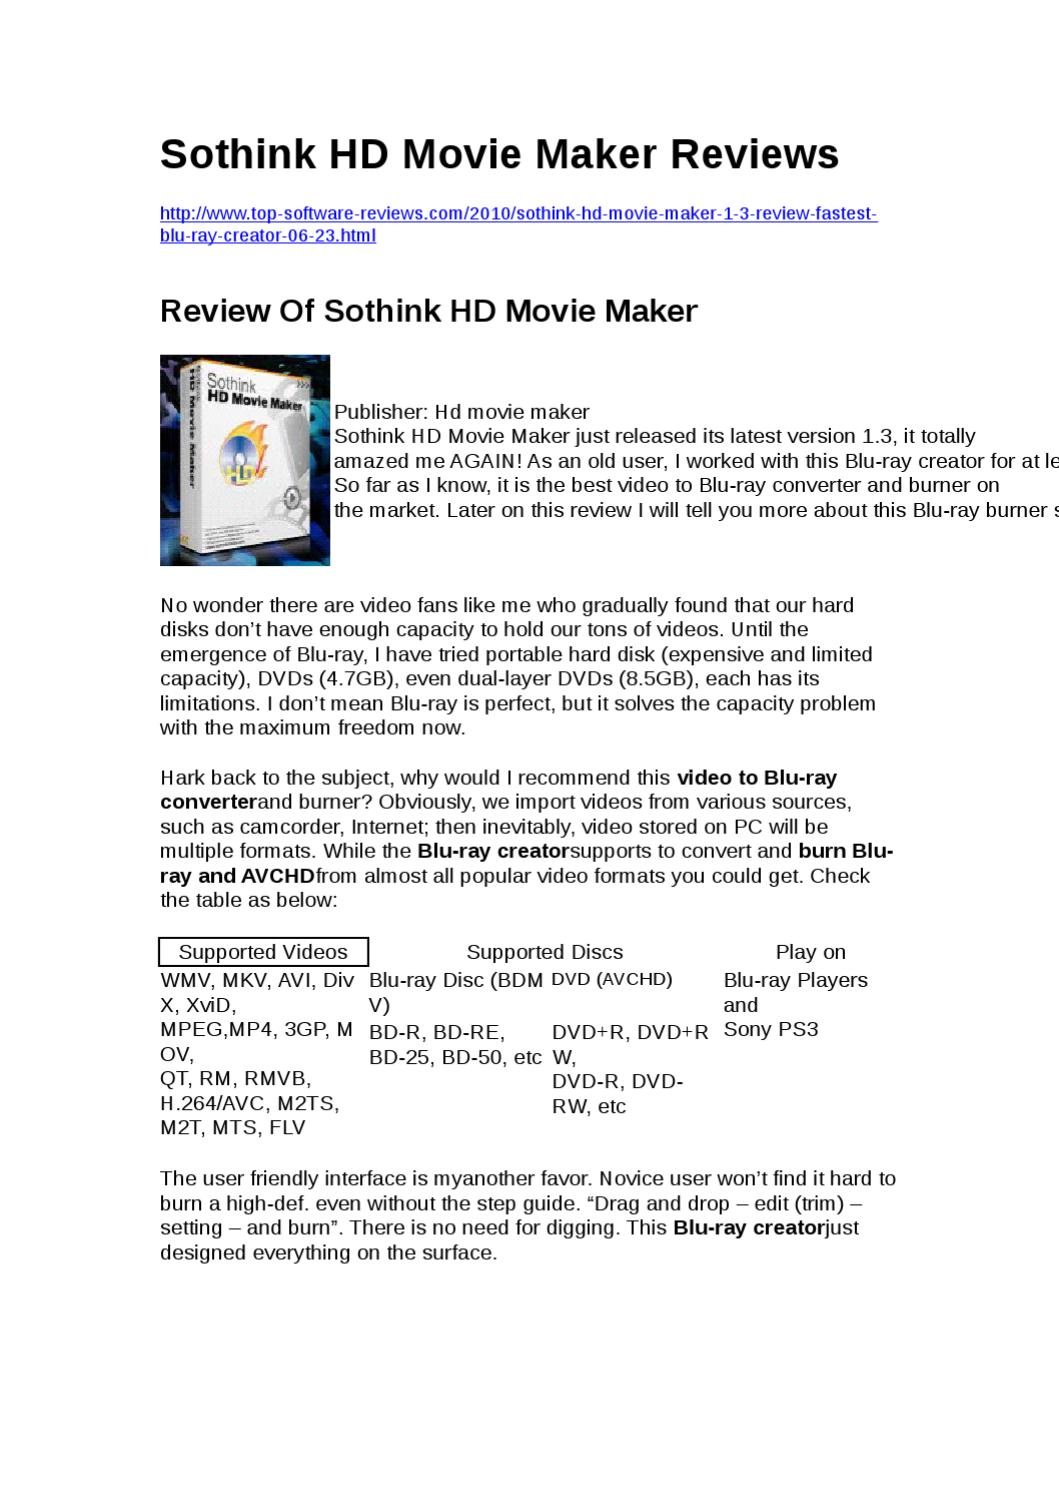 Review Of Sothink HD Movie Maker by Yongqiang Xie - issuu